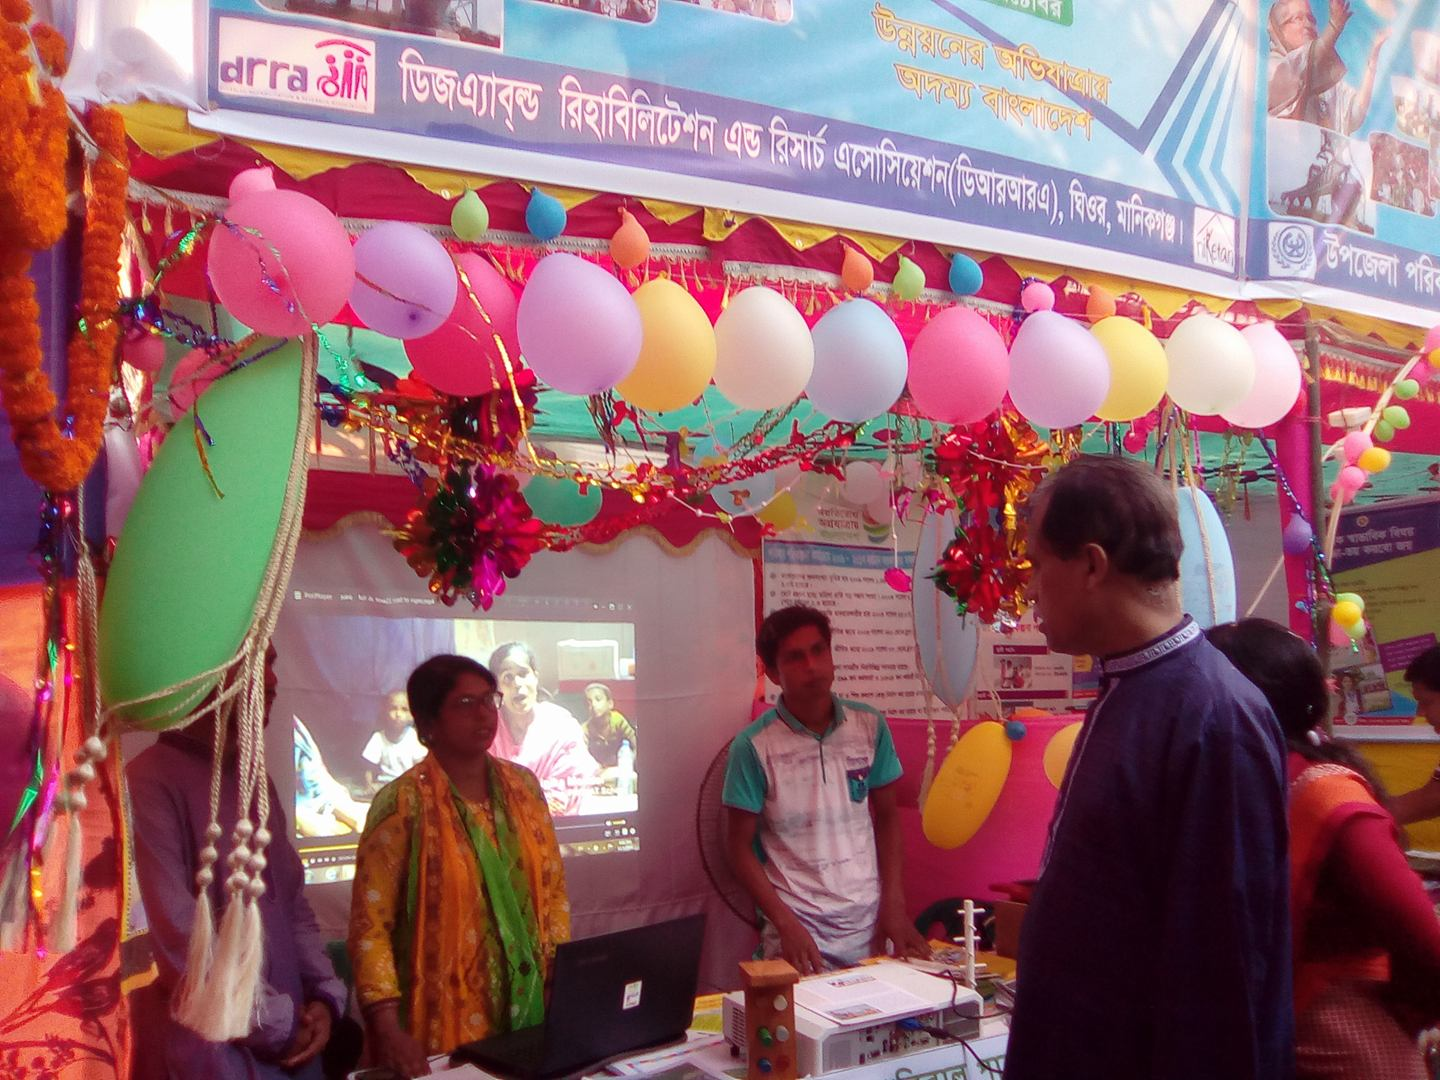 DRRA Stall Awarded 2nd Prize in Development Fair 2018 at Manikganj